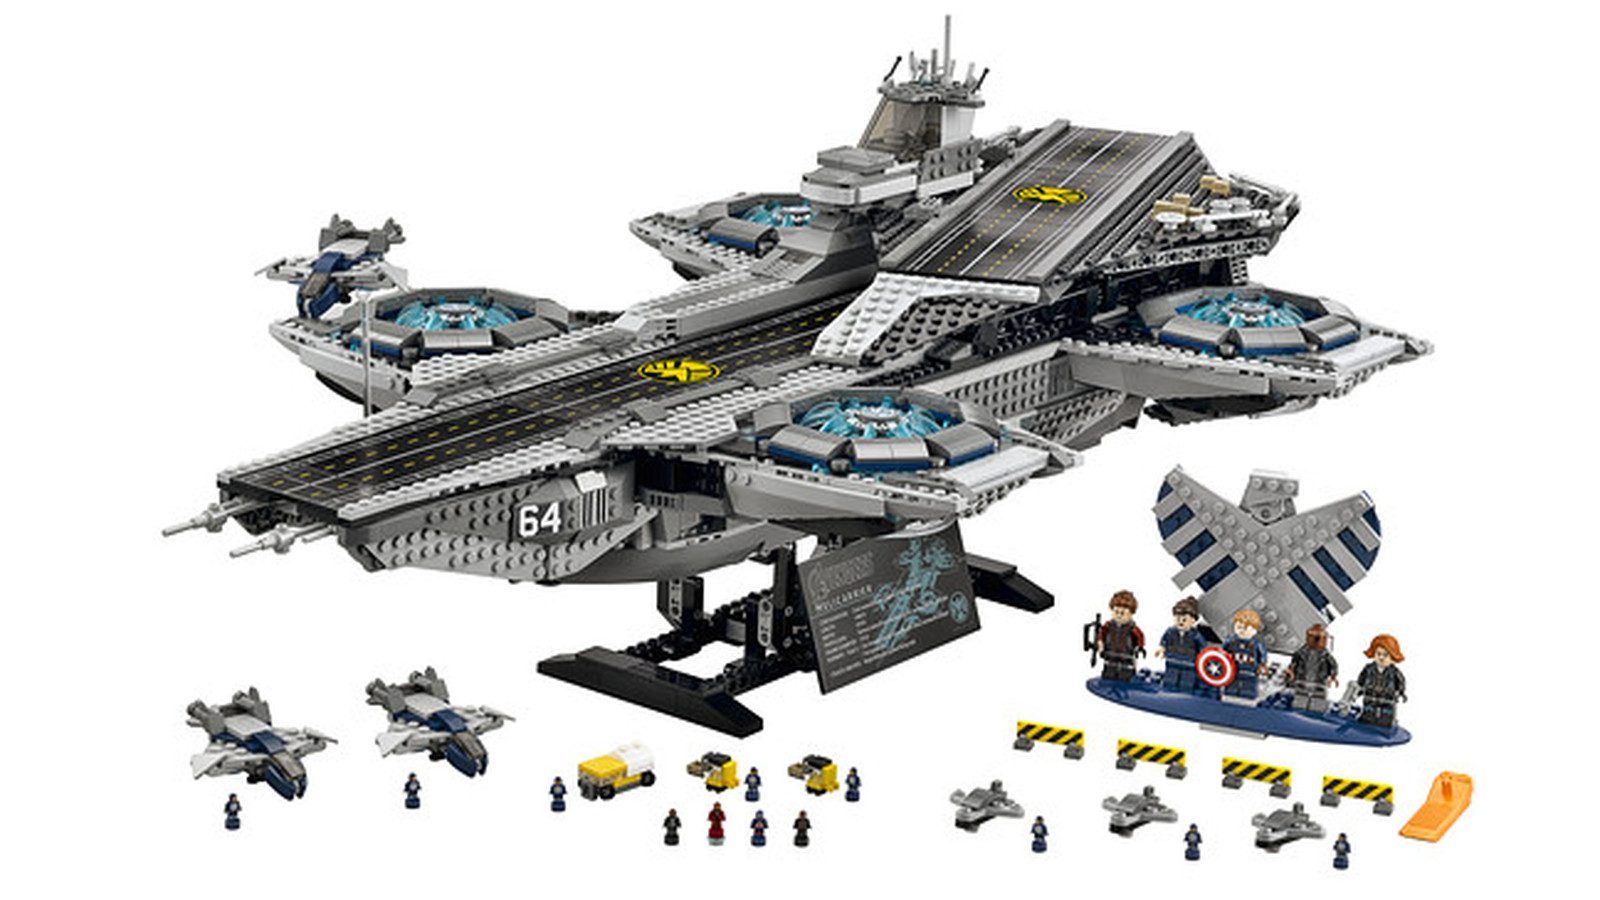 The Lego Avengers Helicarrier Set Is Appropriately Epic